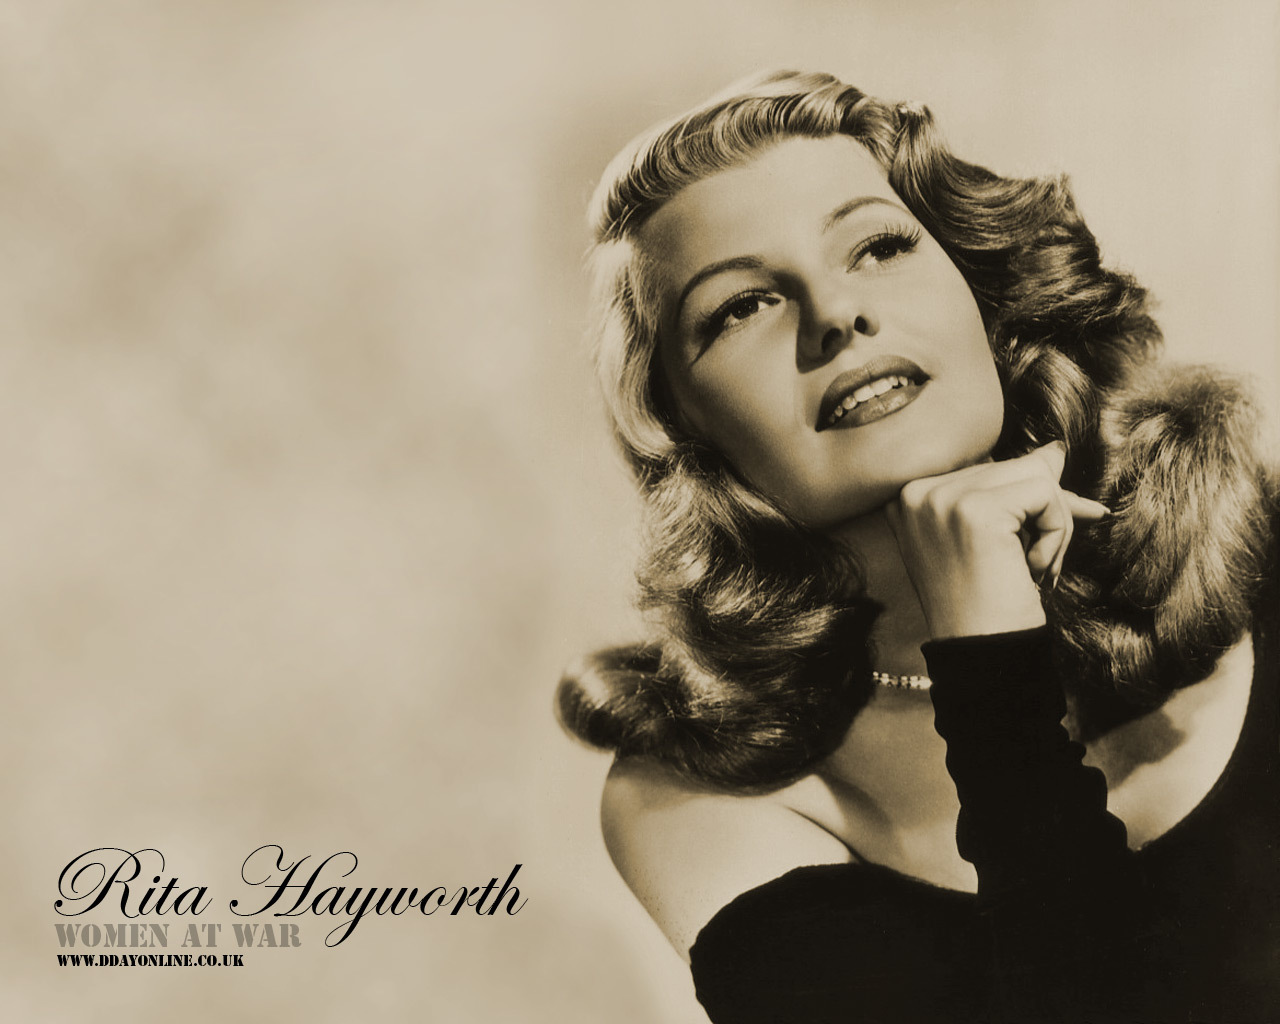 Rita Hayworth Rita Hayworth Wallpaper 9590603 Fanpop